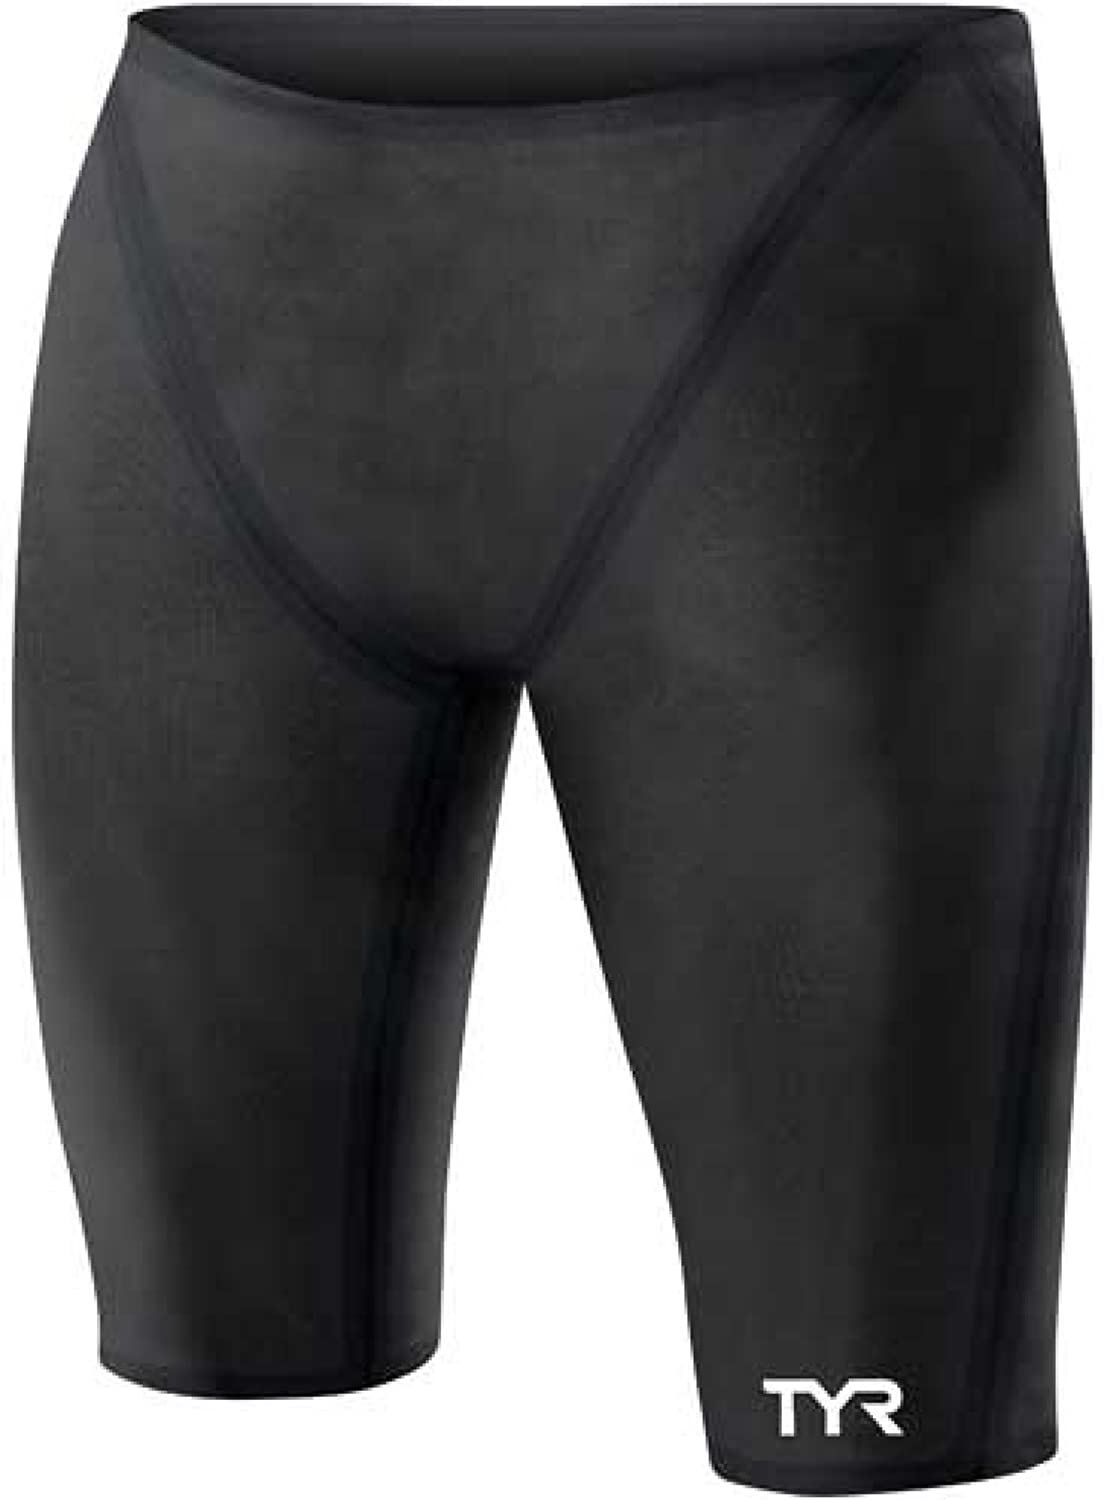 TYR 1TBJA6A30 Tracer B-SRS Jammer Swimsuit, Black, Size 30